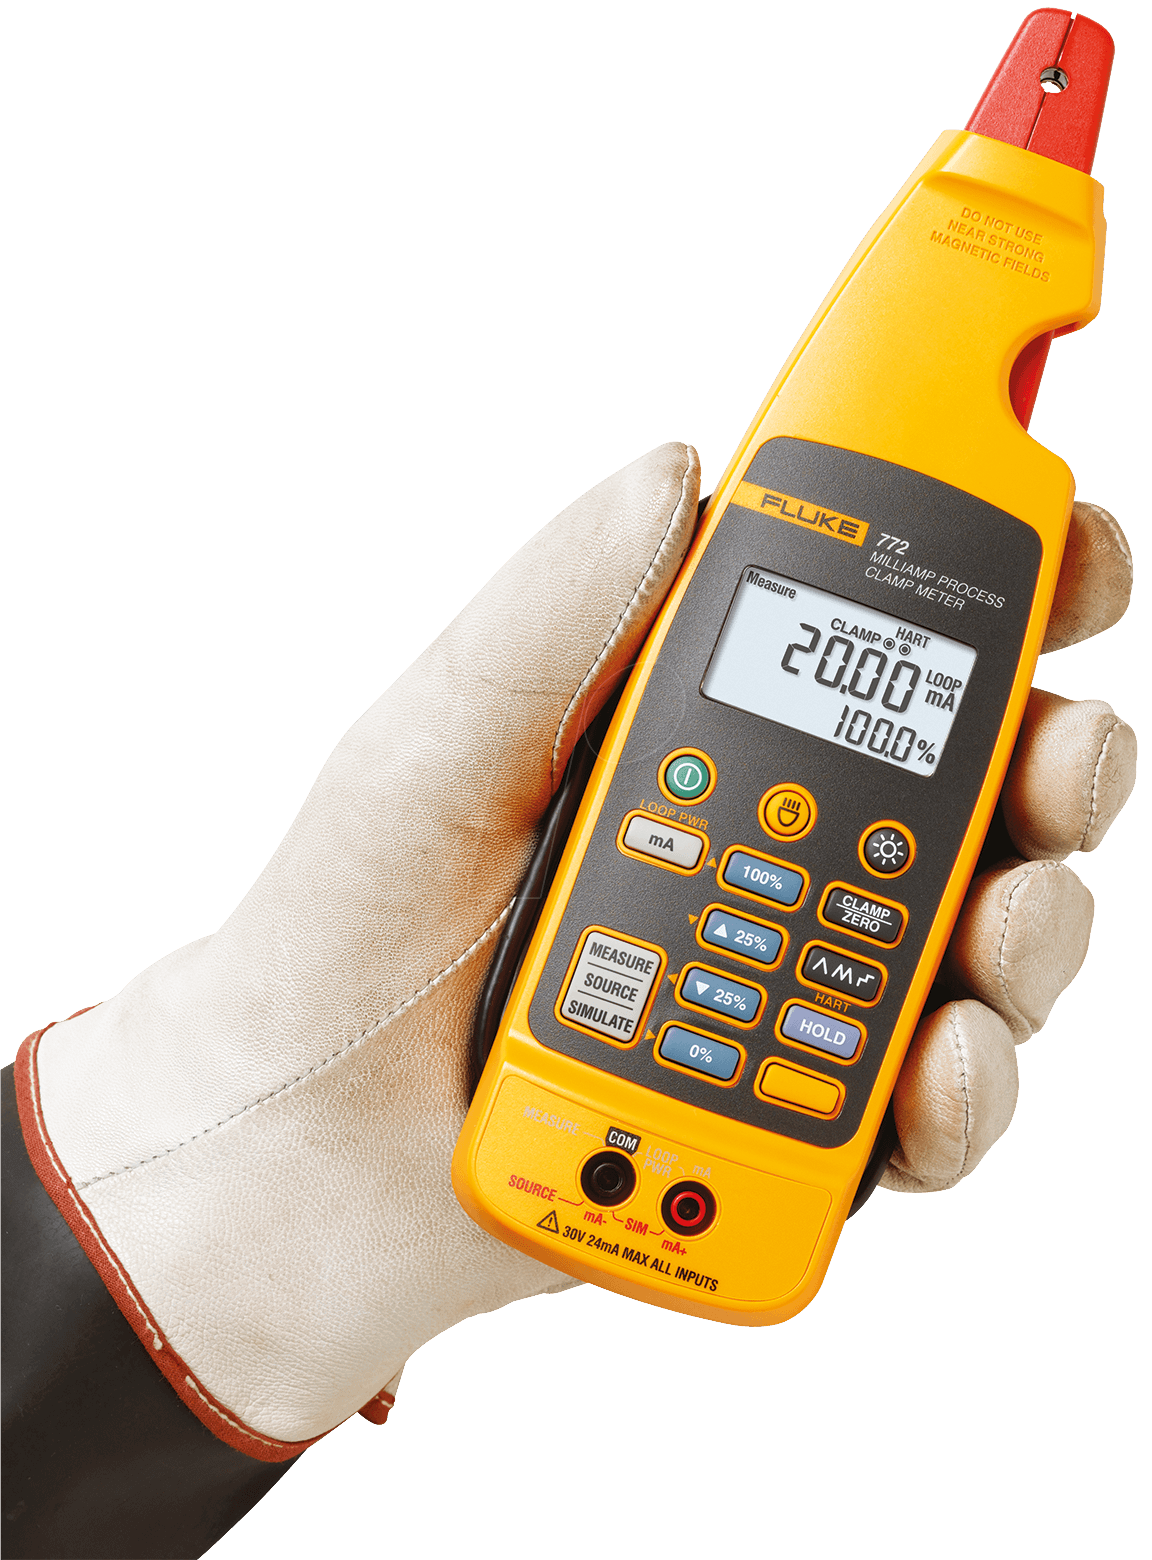 fluke 772 ma process clamp meter at reichelt elektronik. Black Bedroom Furniture Sets. Home Design Ideas